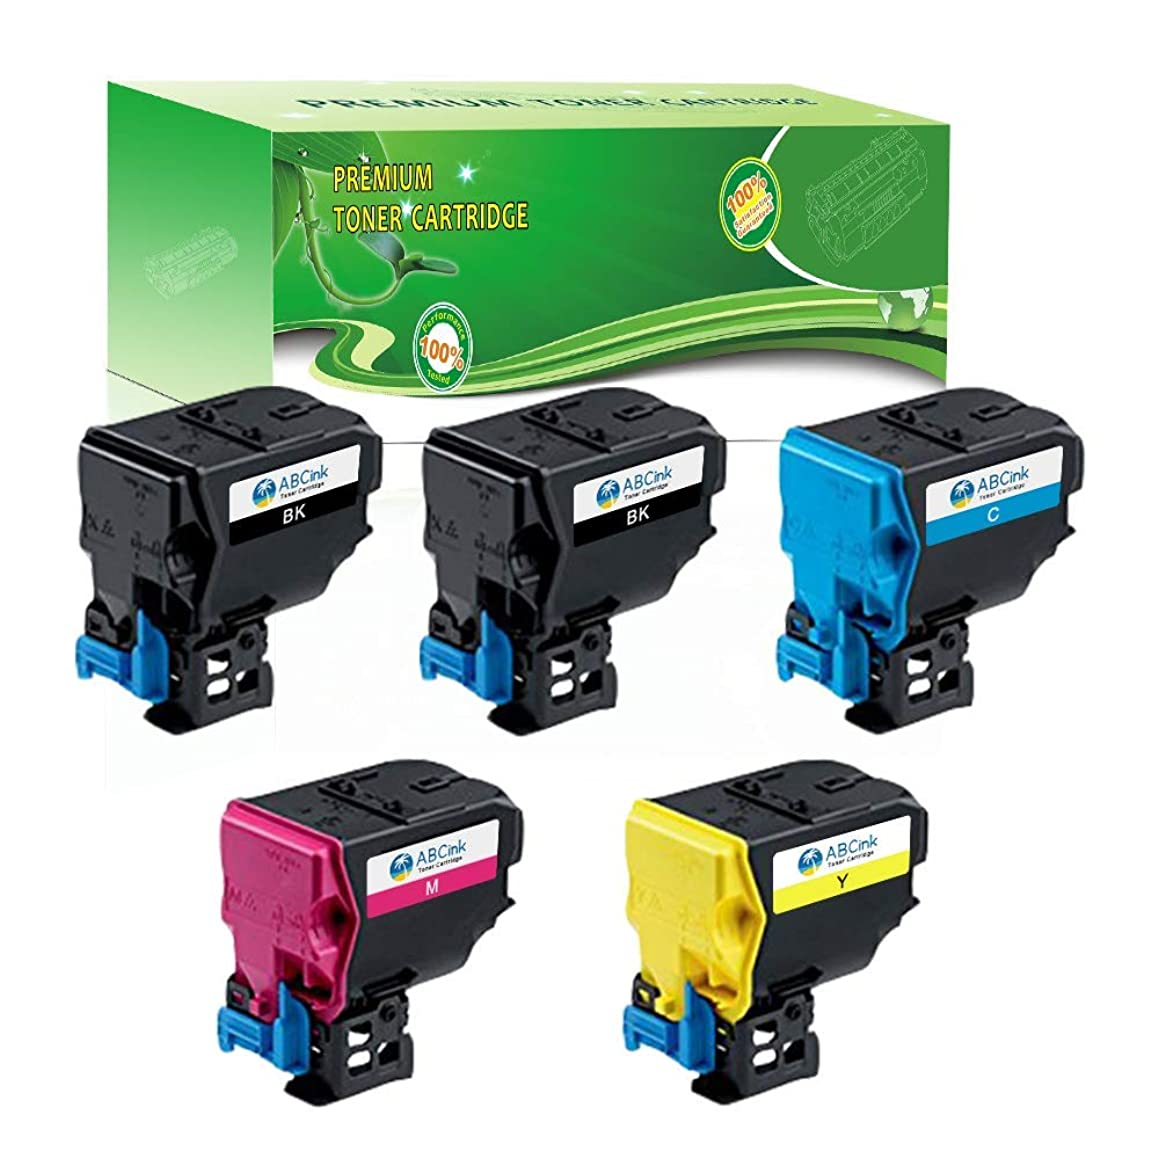 ABCink C3850 Toner Compatible for Konica Minolta Bizhub C3850 Color Laser Printer Copier Toner Cartridge,5 Pack(2 Black,1 Cyan,1 Yellow,1 Magenta)